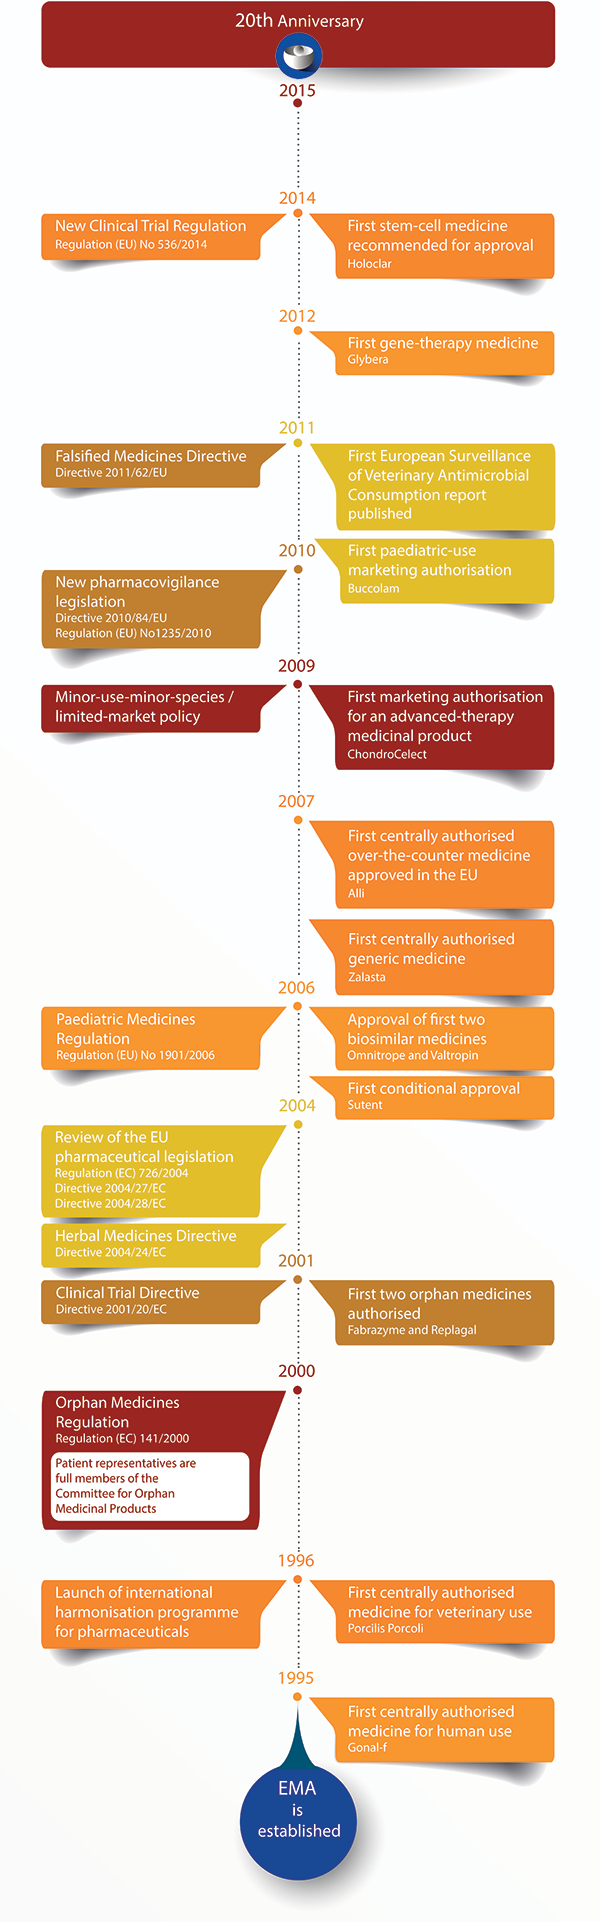 European Medicines Agency 20th anniversary timeline